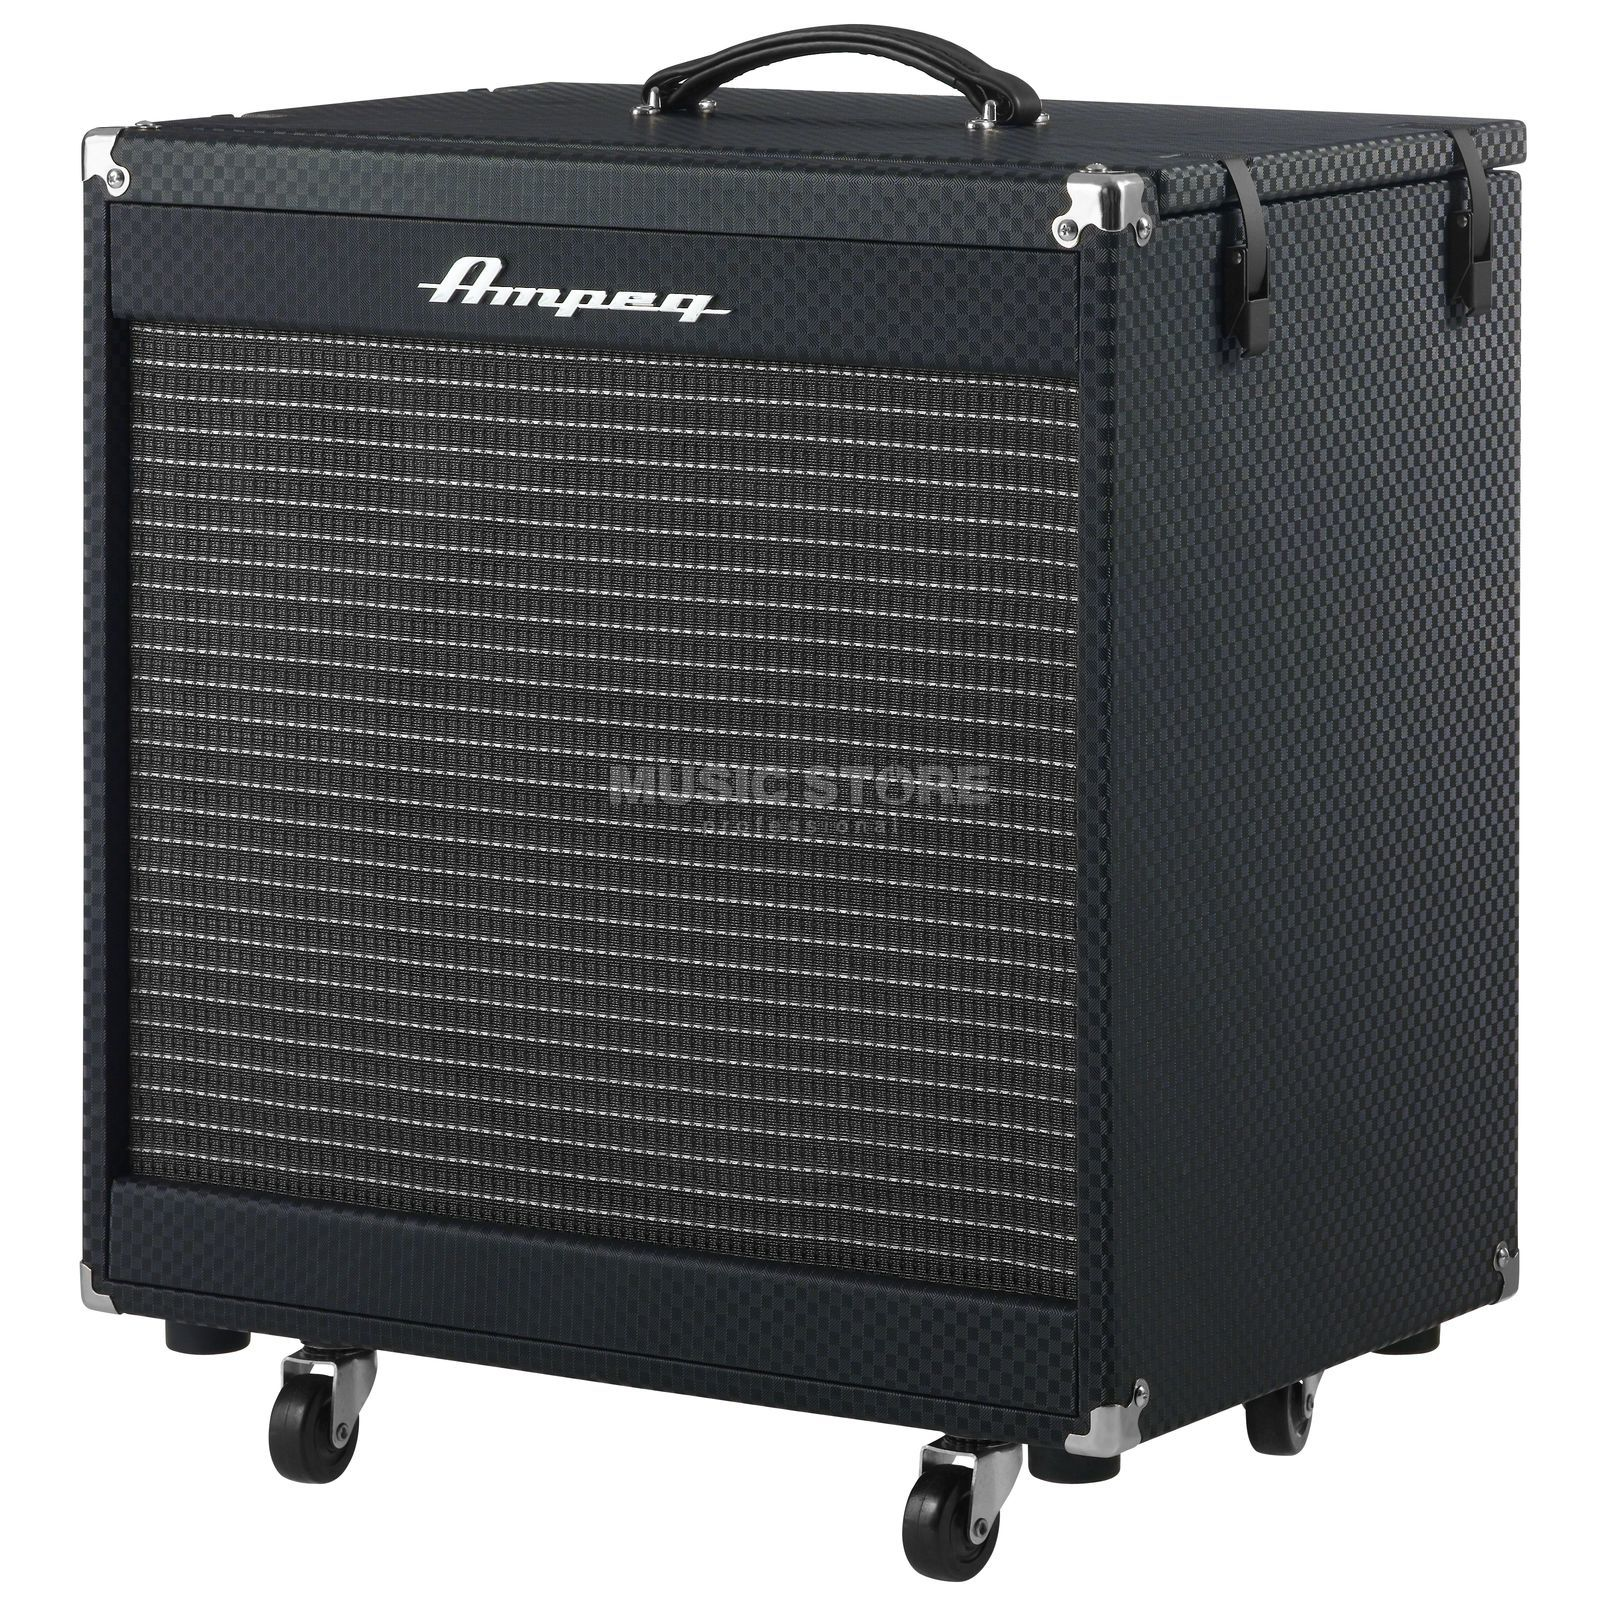 Ampeg PF-115HE Bass Guitar Amp Exten sion Cabinet   Product Image